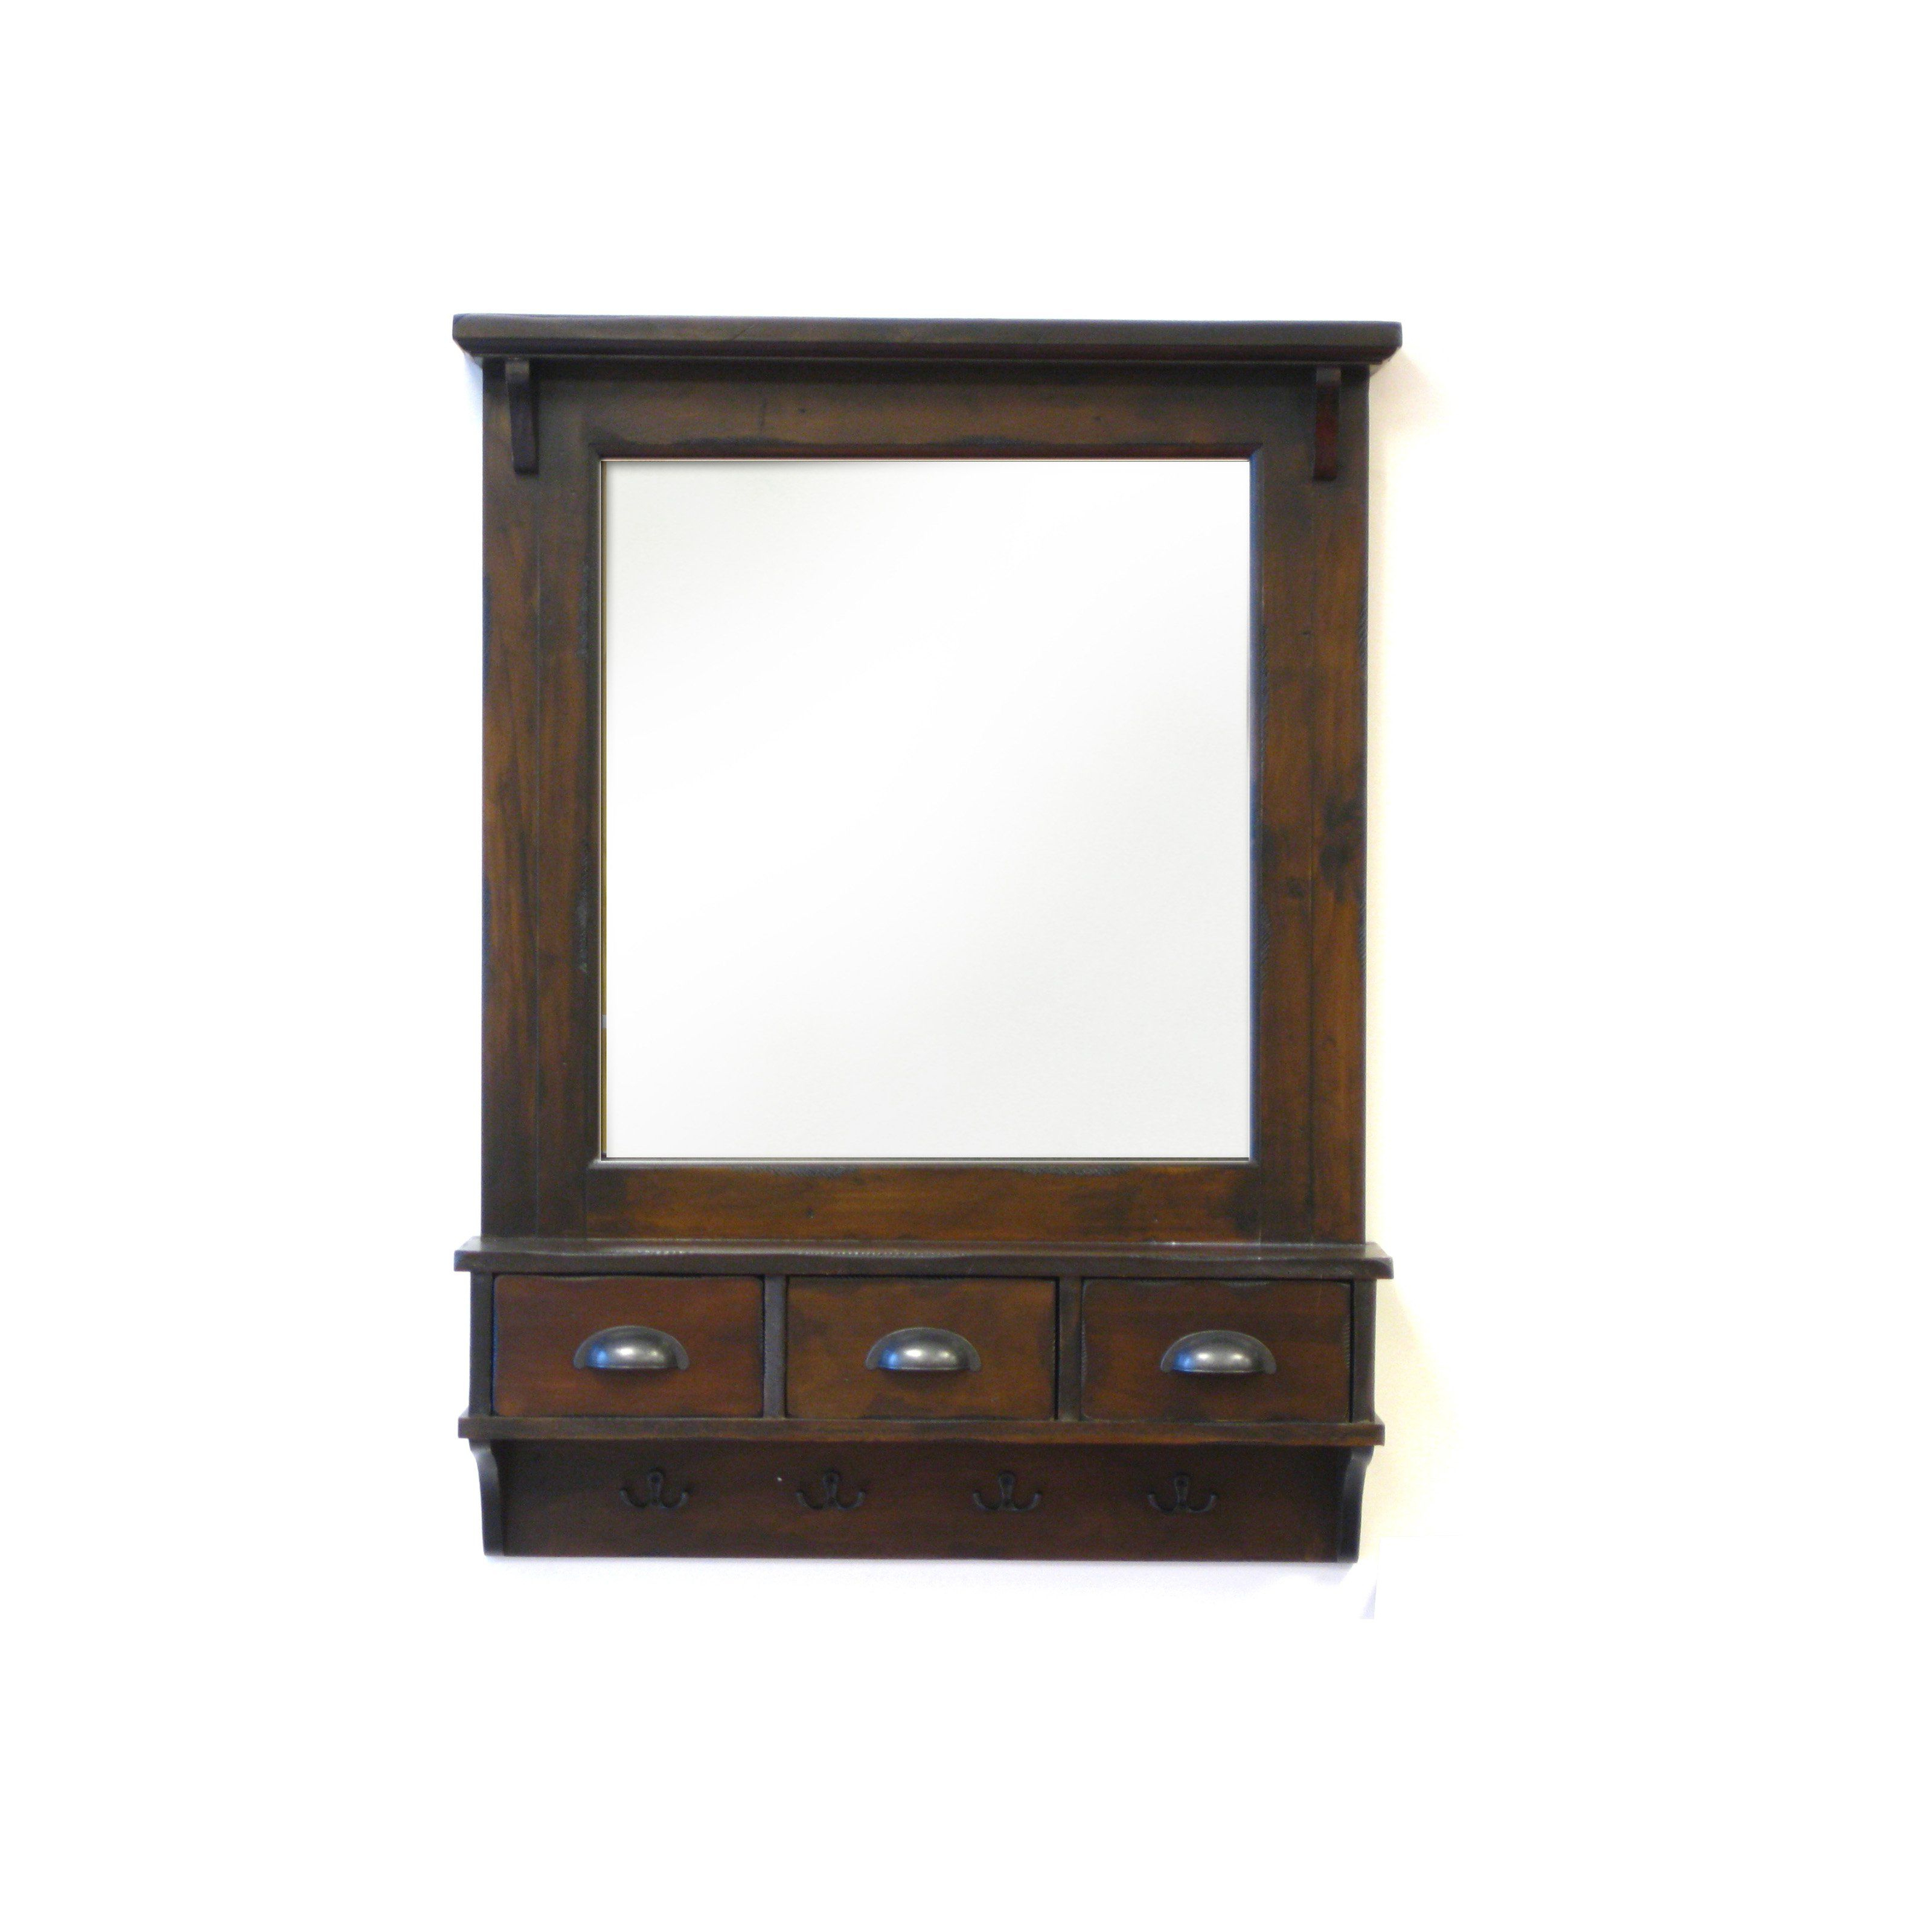 2019 Wall Mirrors With Shelf And Hooks For Bombay Wall Mirror W/ Drawer Storage & Hooks – 27W X 37H In (View 17 of 20)